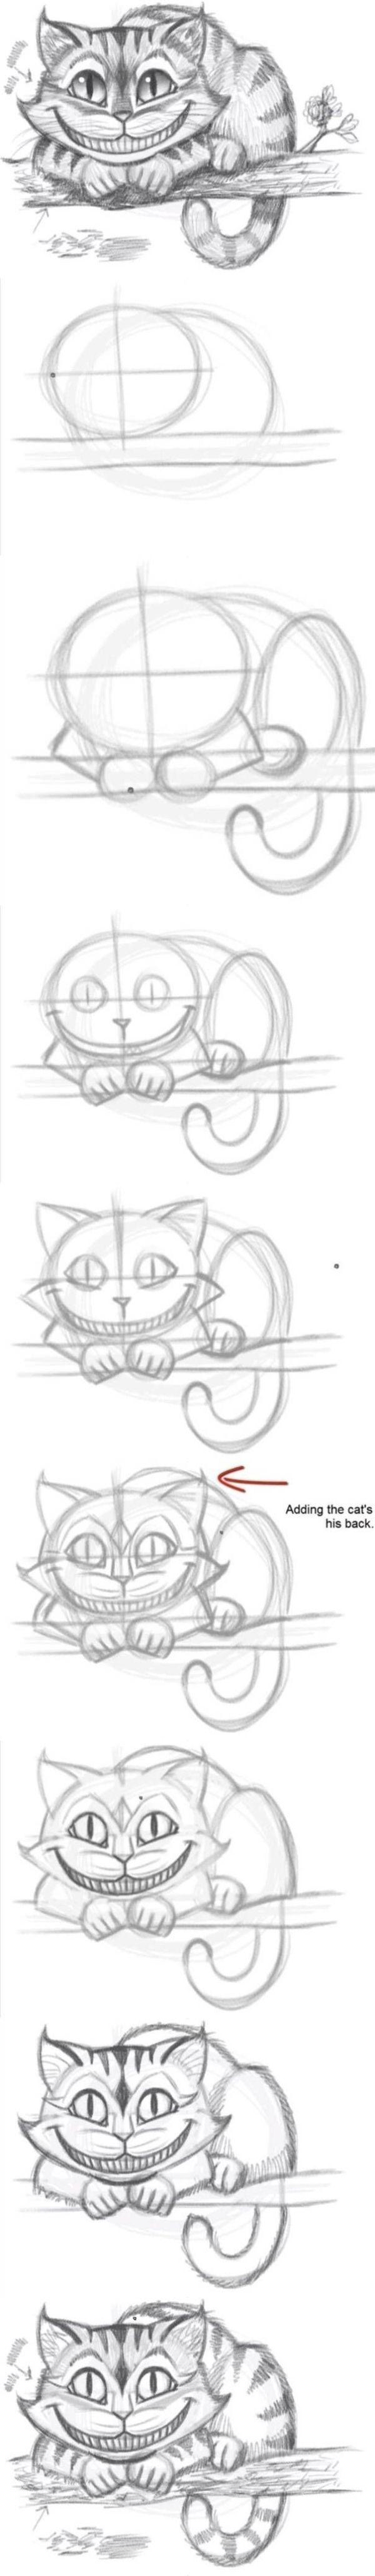 How to Draw the Cheshire Cat by useful diy:   : ) #Drawing  #Cheshire_Cat by LisaDB #CatDrawing